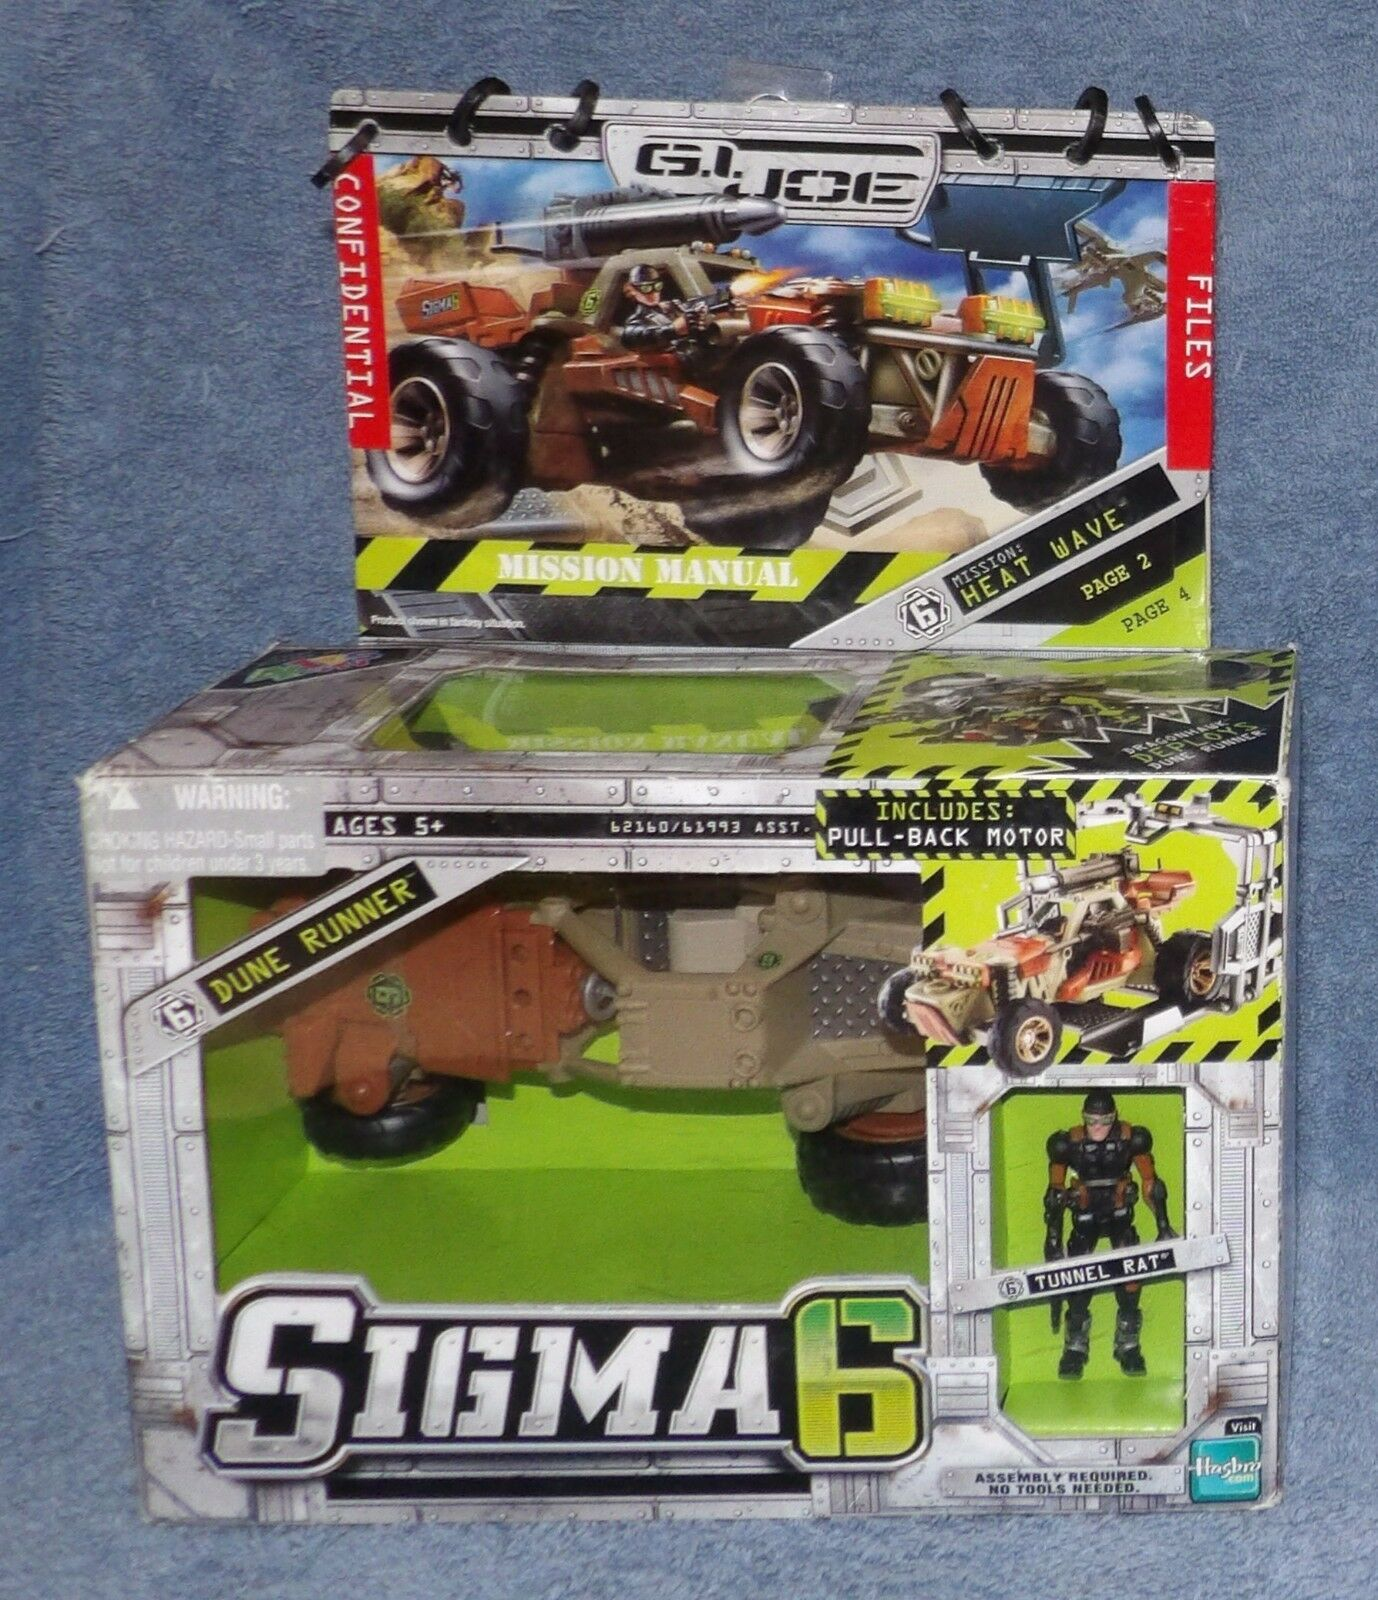 GI JOE SIGMA 6 MISSION: HEAT WAVE SET WITH DUNE RUNNER & TUNNEL RAT 2006